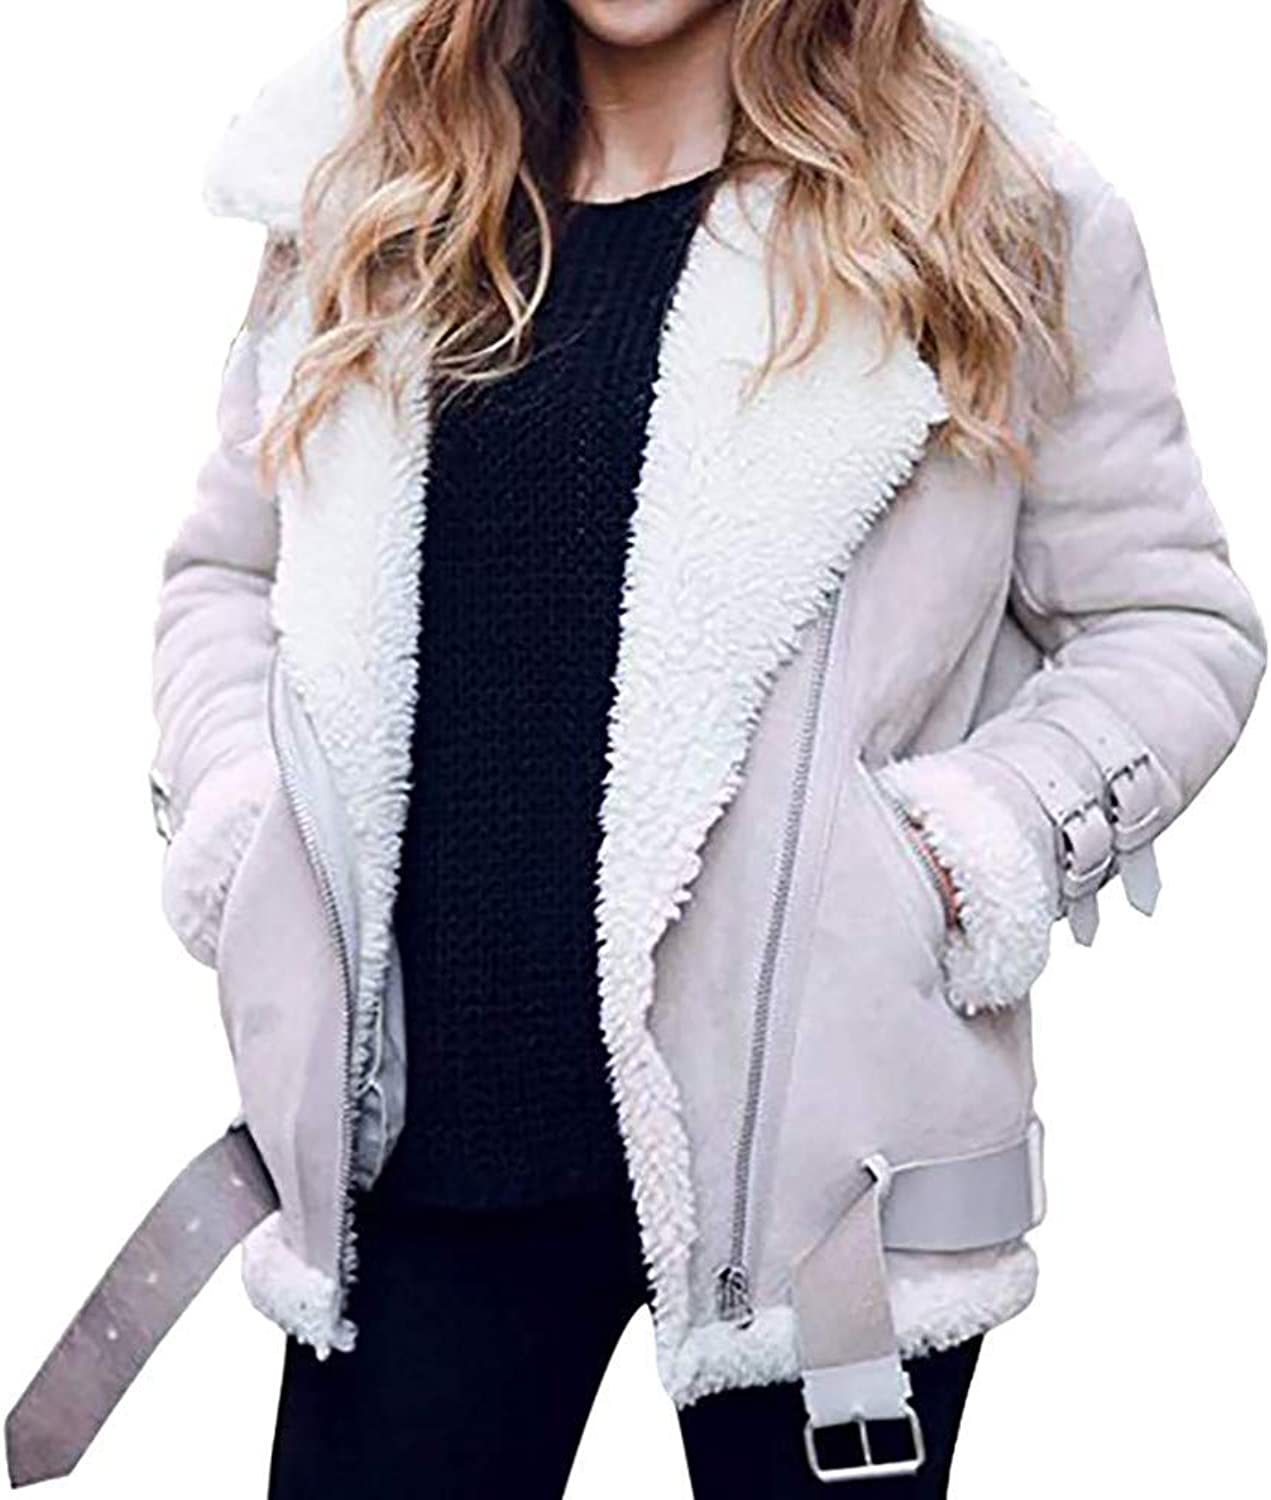 CHOiES record your inspired fashion Women's Faux Suede Shearling Laple Jacket Zipper Belted Suede Moto Coat Pockets